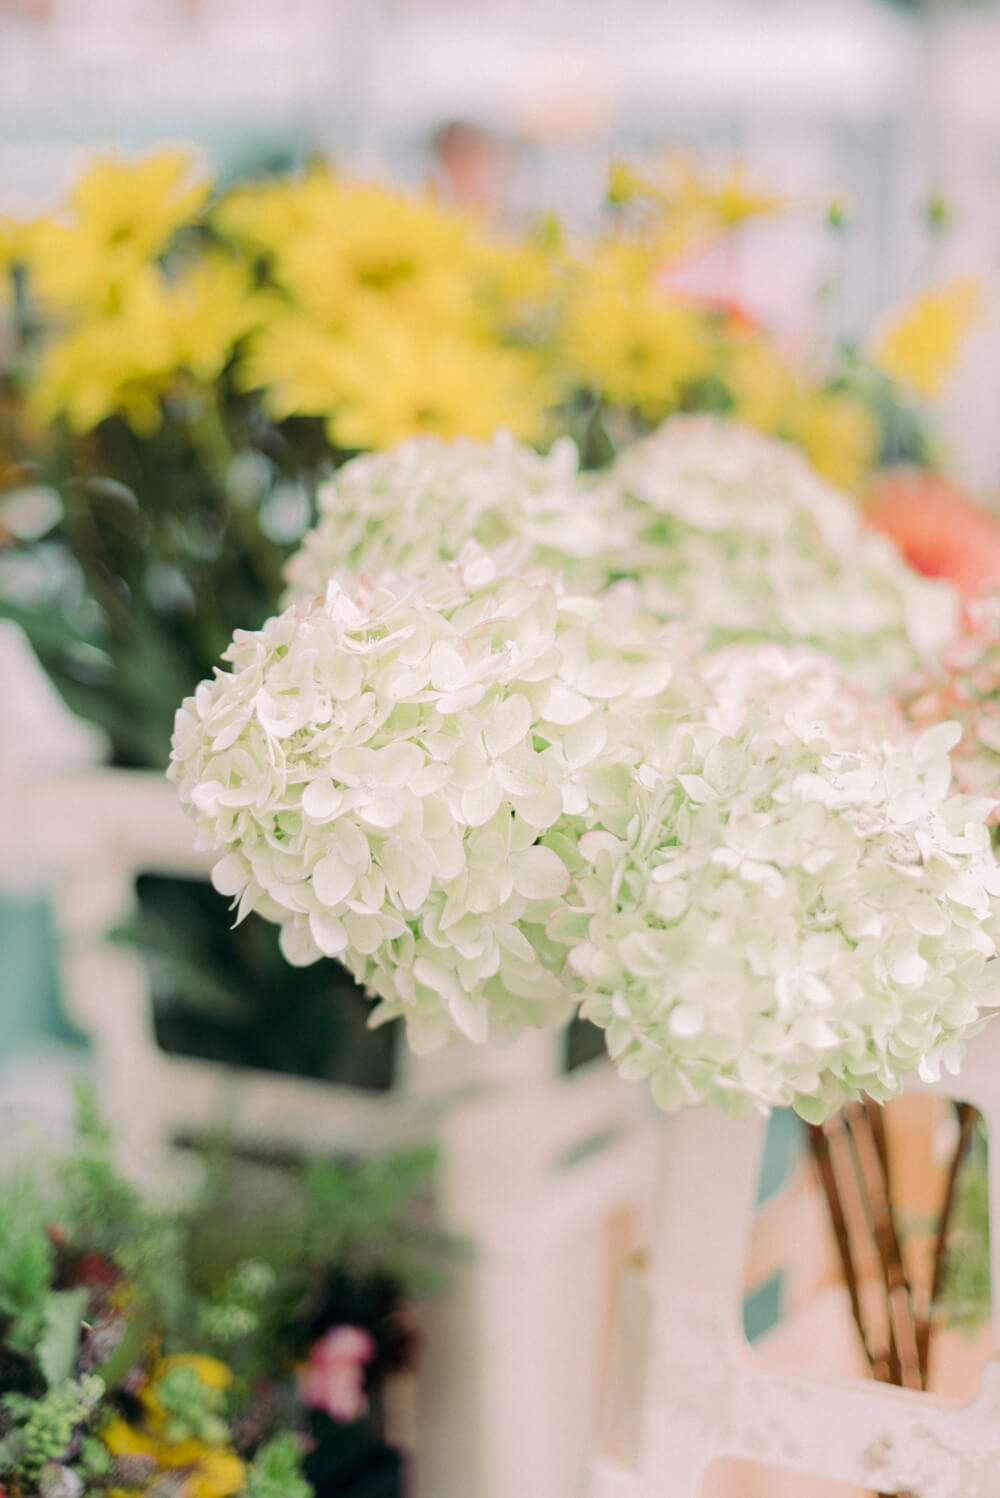 white hydrangea flowers at the Columbia Road flower Market - Photo by Cristina Ilao